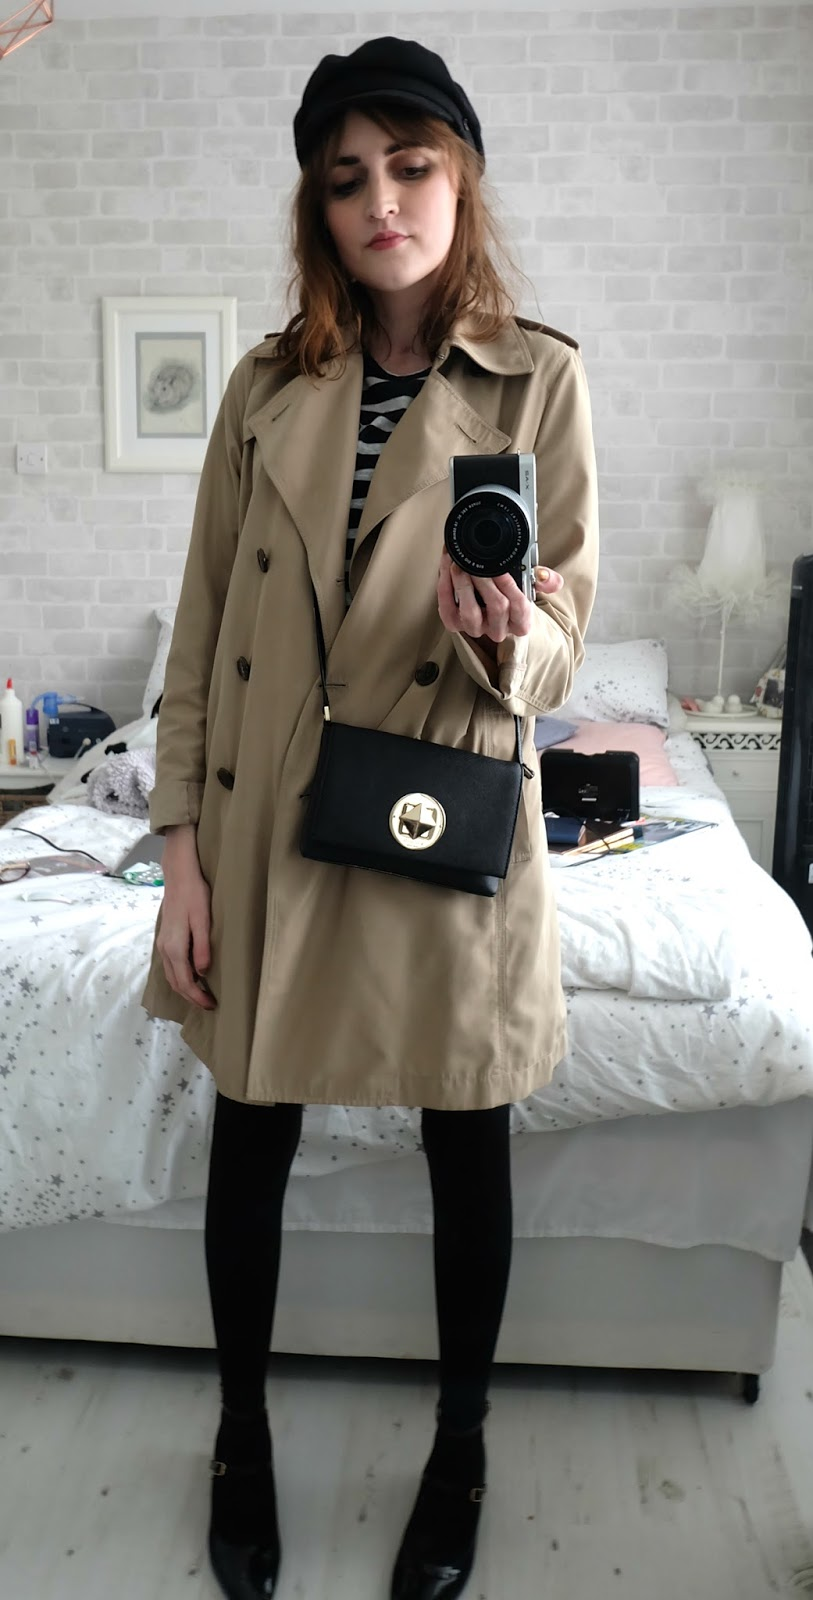 uniqlo trench coat, topshop stripe heart top, new look patent skirt, RAID alexus shoes, nine by savannah miller baker boy hat, kate spade sally bag